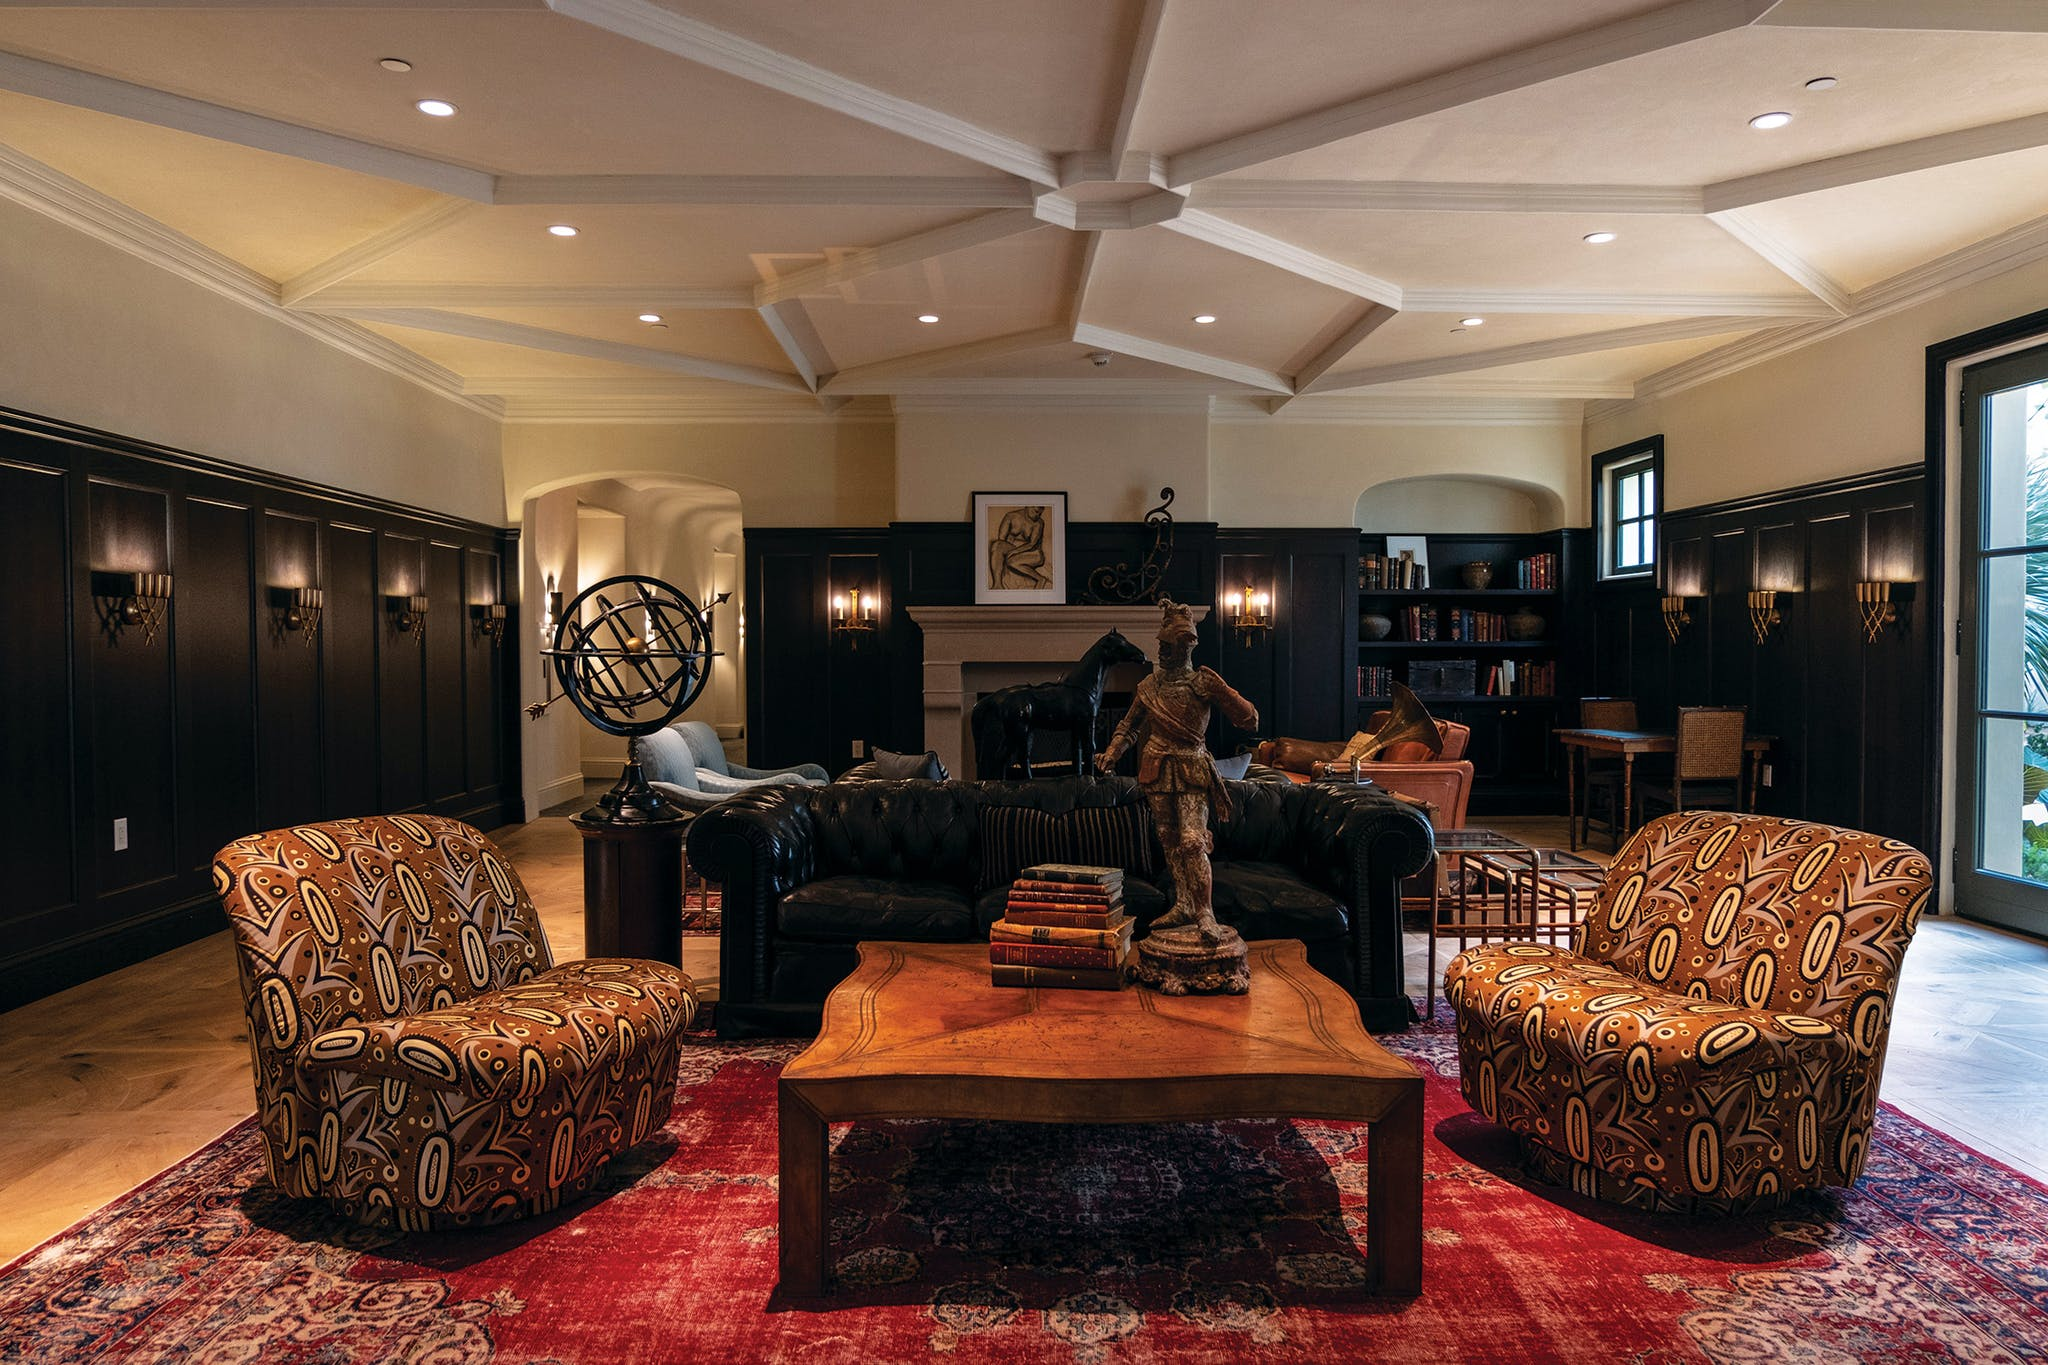 Lone Star State charm is evident throughout. In addition to honoring the original owners' heritage, Fulk nodded to the Texas roots of key Commodore Perry Estate stakeholders. Auberge Resorts Collection is owned by Houston-based Dan Friedkin and operated by a Dallas-based CEO and president, Craig Reid; and the project was envisioned by the Austin developer Clark Lyda. (Lyda also had a hand in restoring the Stagecoach Inn in Salado.)